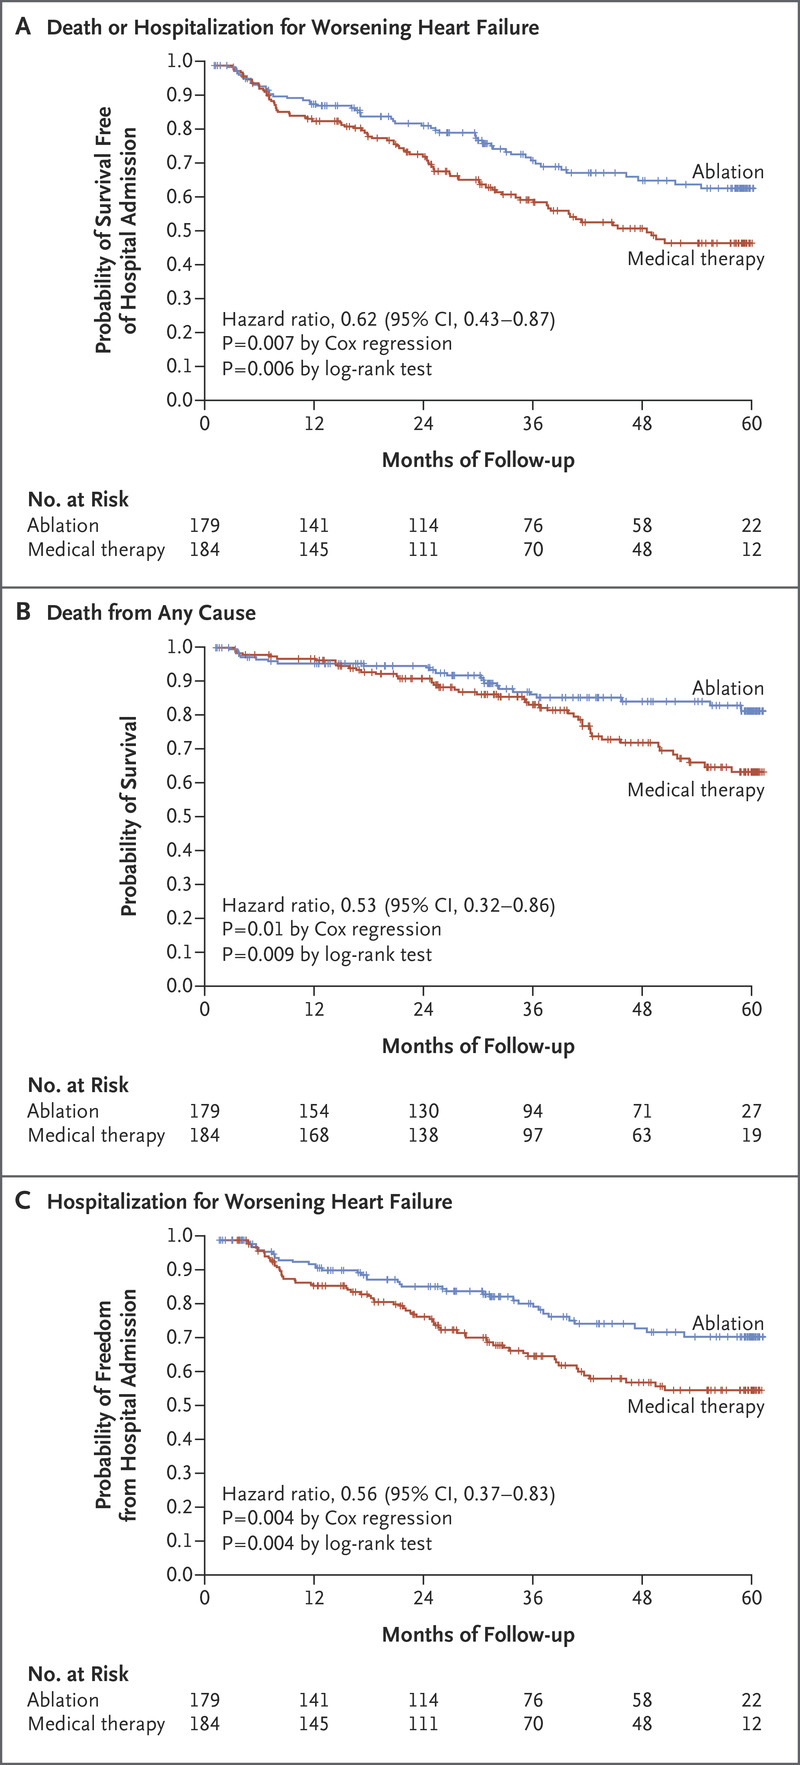 Catheter ablation for atrial fibrillation with heart failure nejm kaplanmeier curves comparing survival free of the primary end point death from any cause or admission for worsening heart failure and its two components nvjuhfo Image collections